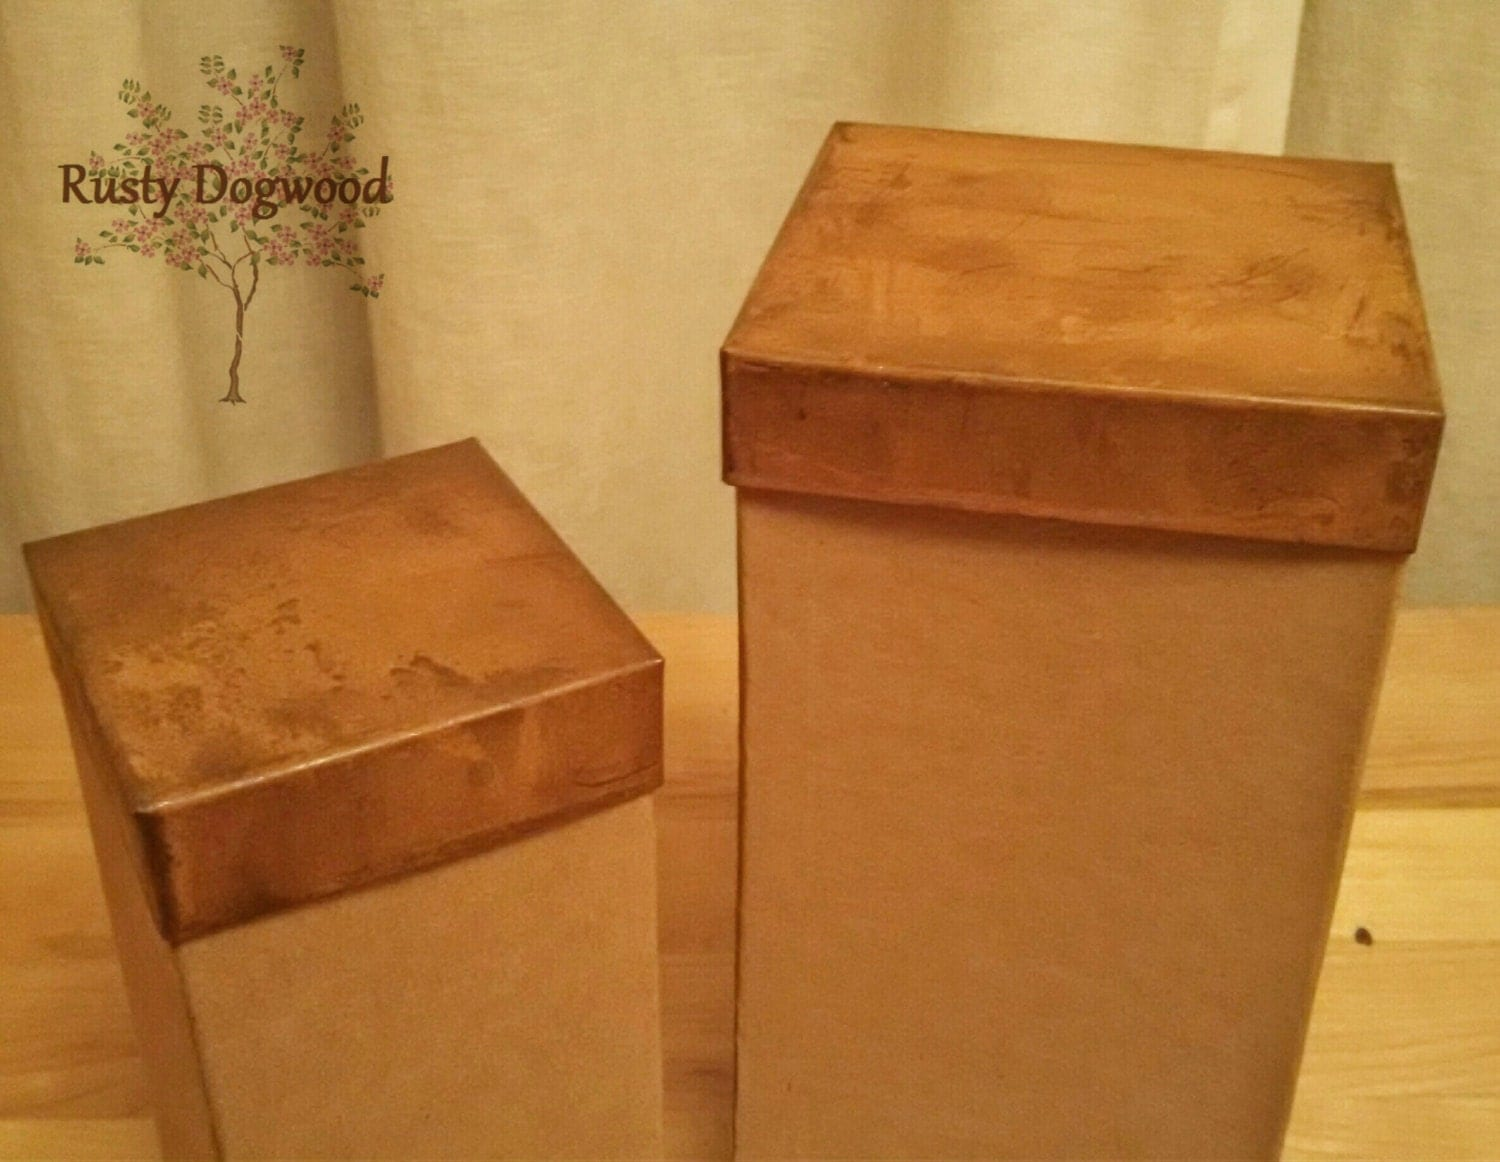 rusty coppery tin lids on two tall cardboard boxes. Black Bedroom Furniture Sets. Home Design Ideas